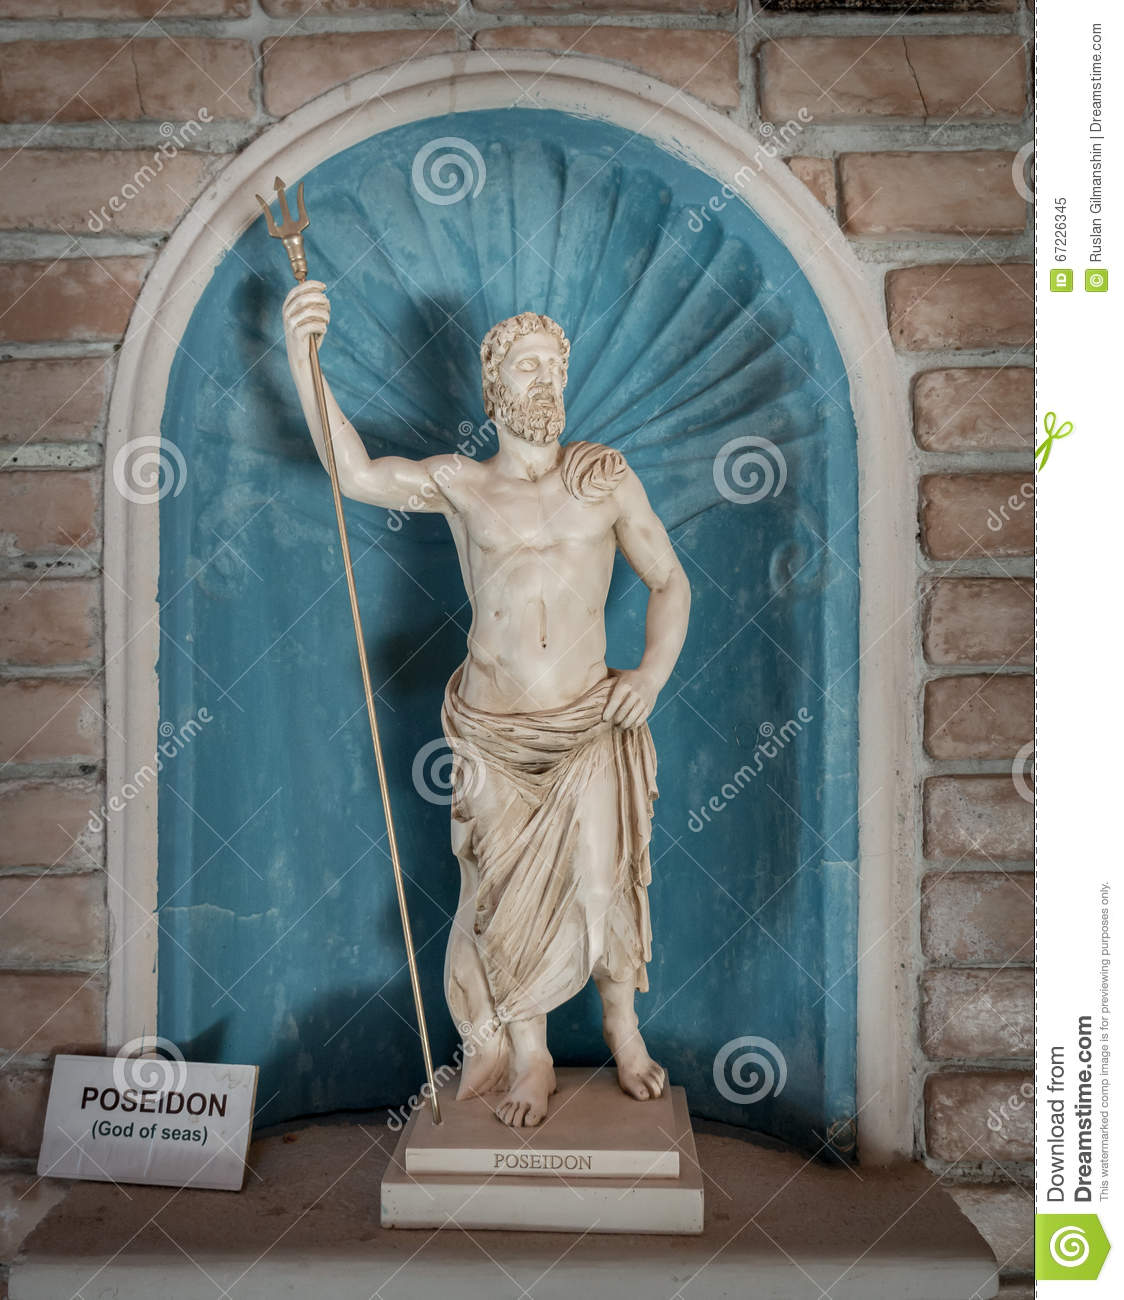 Poseidon statue god of sea in greek mythology stock image image 67226345 - Poseidon statue greece ...